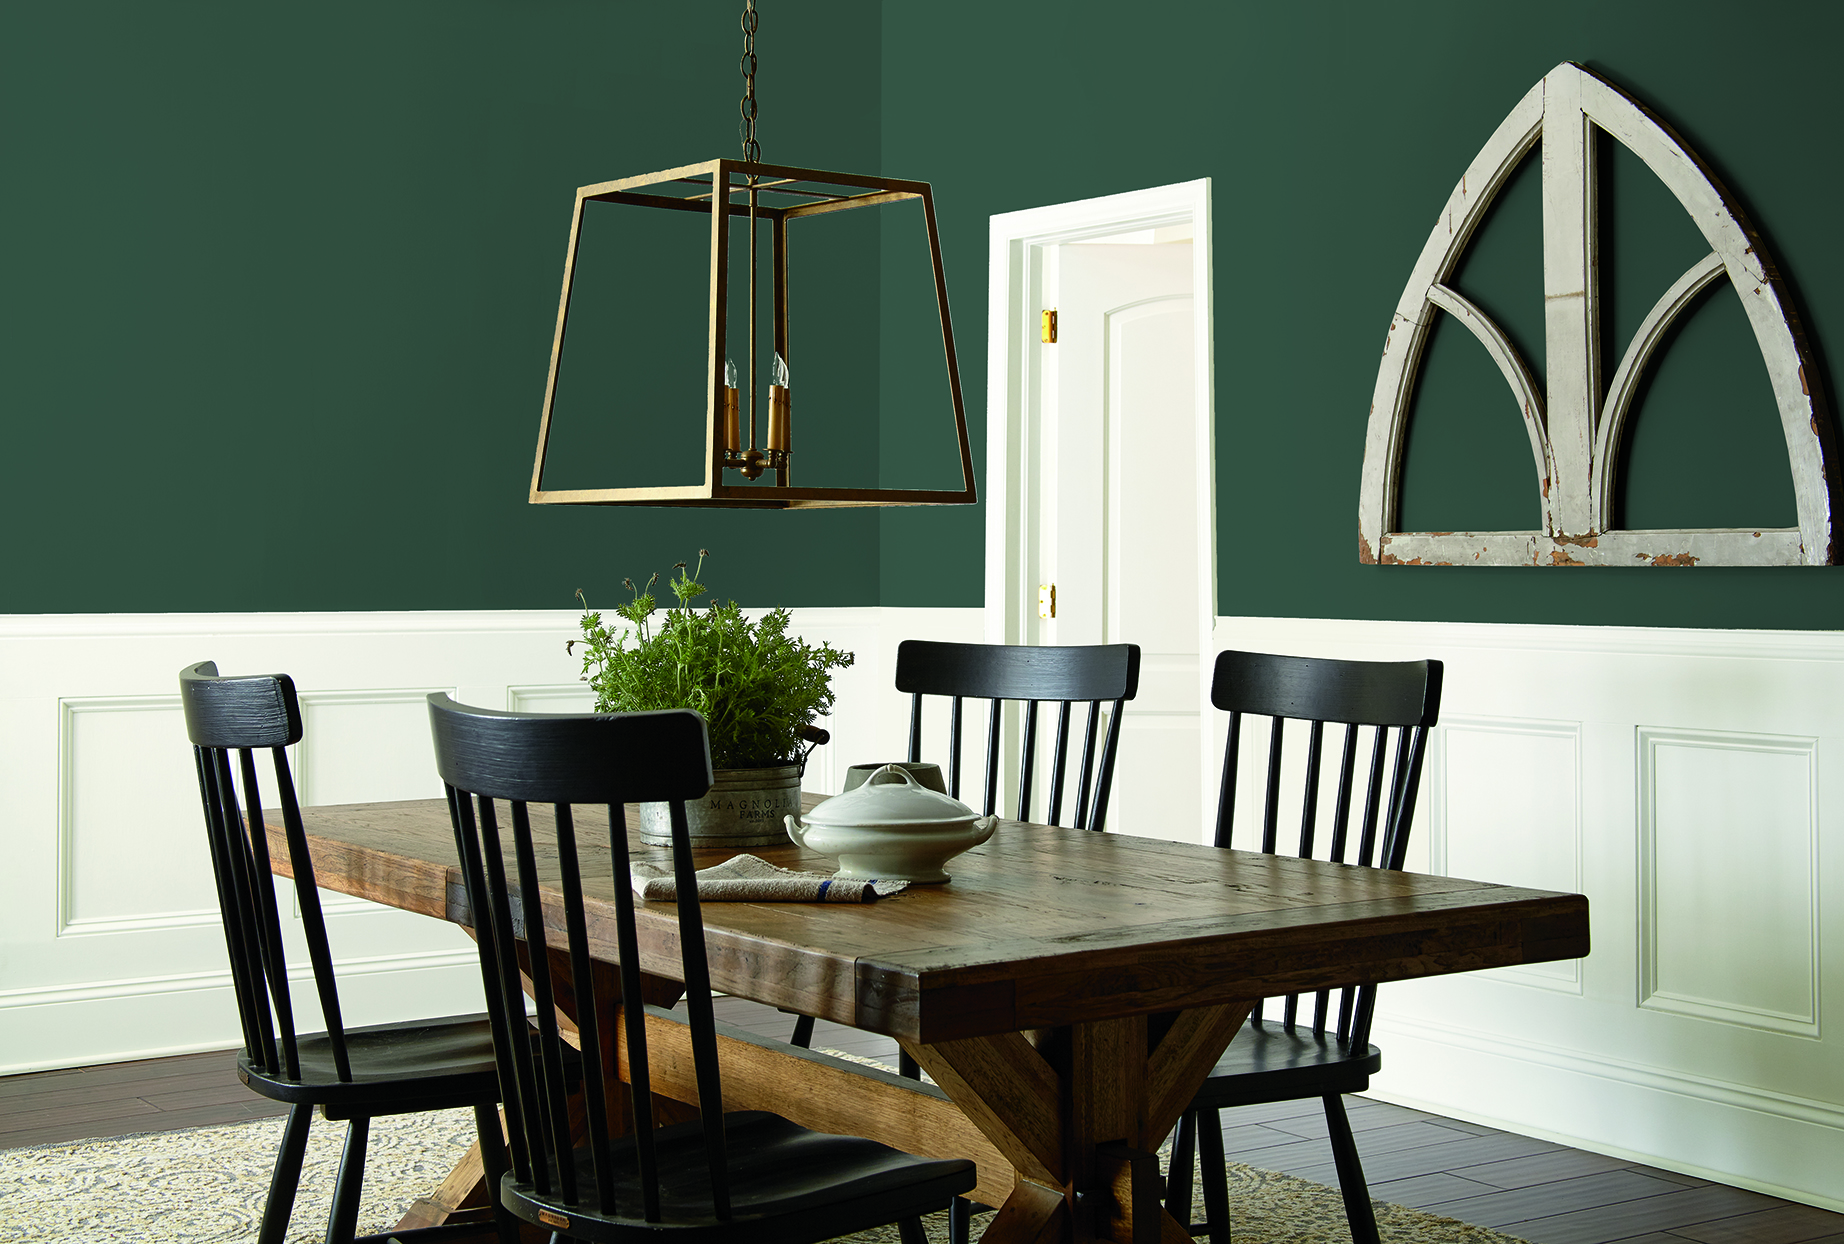 dining room with green walls and white wainscoting